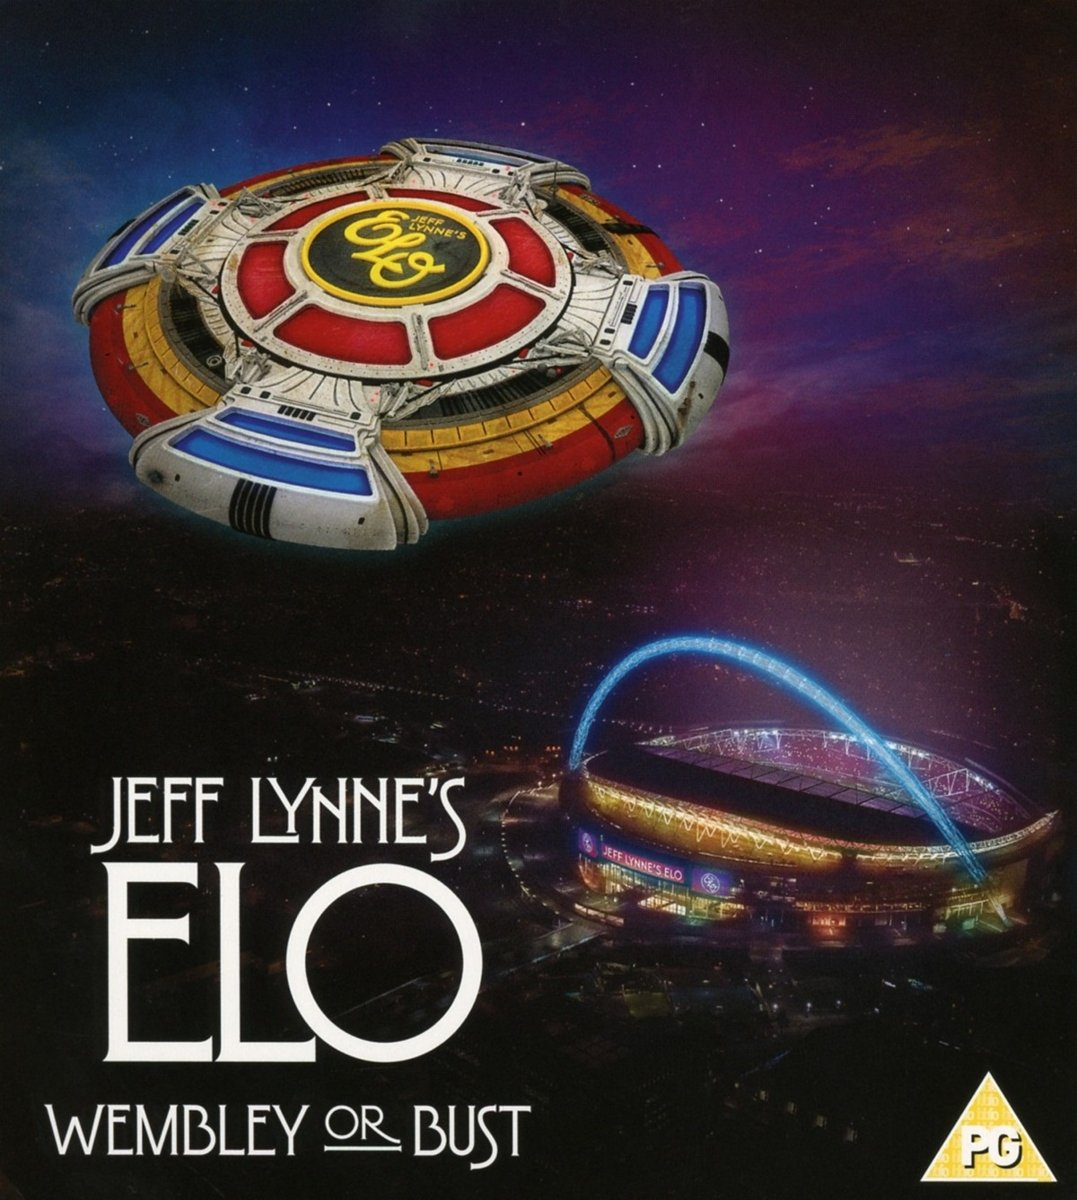 Jeff Lynne's ELO - Wembley or Bust (2 CD/1 Blu-Ray) by Columbia